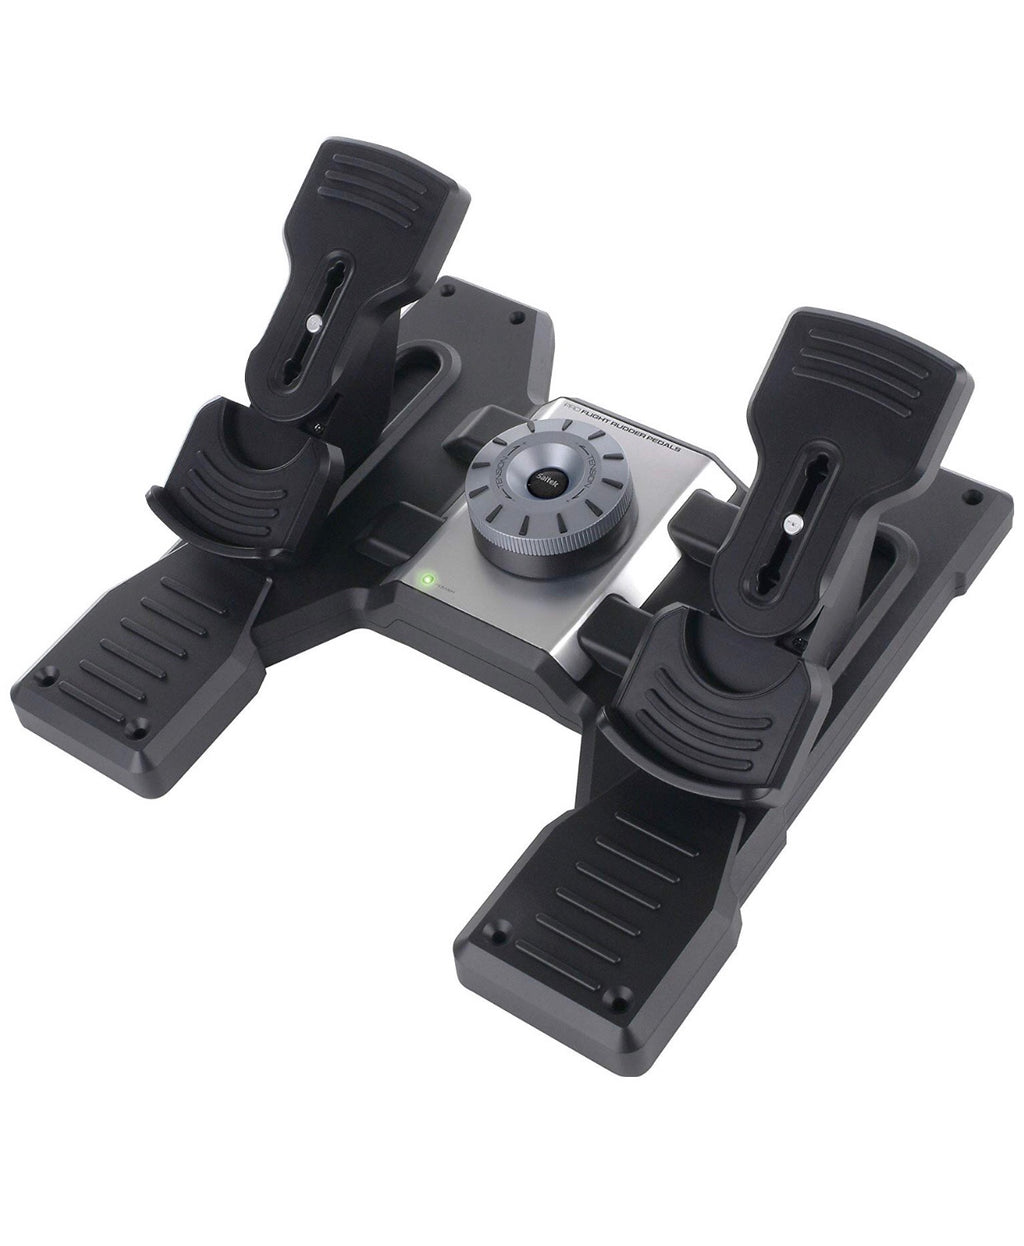 Flight Rudder Pedals - Sky Crew PTY